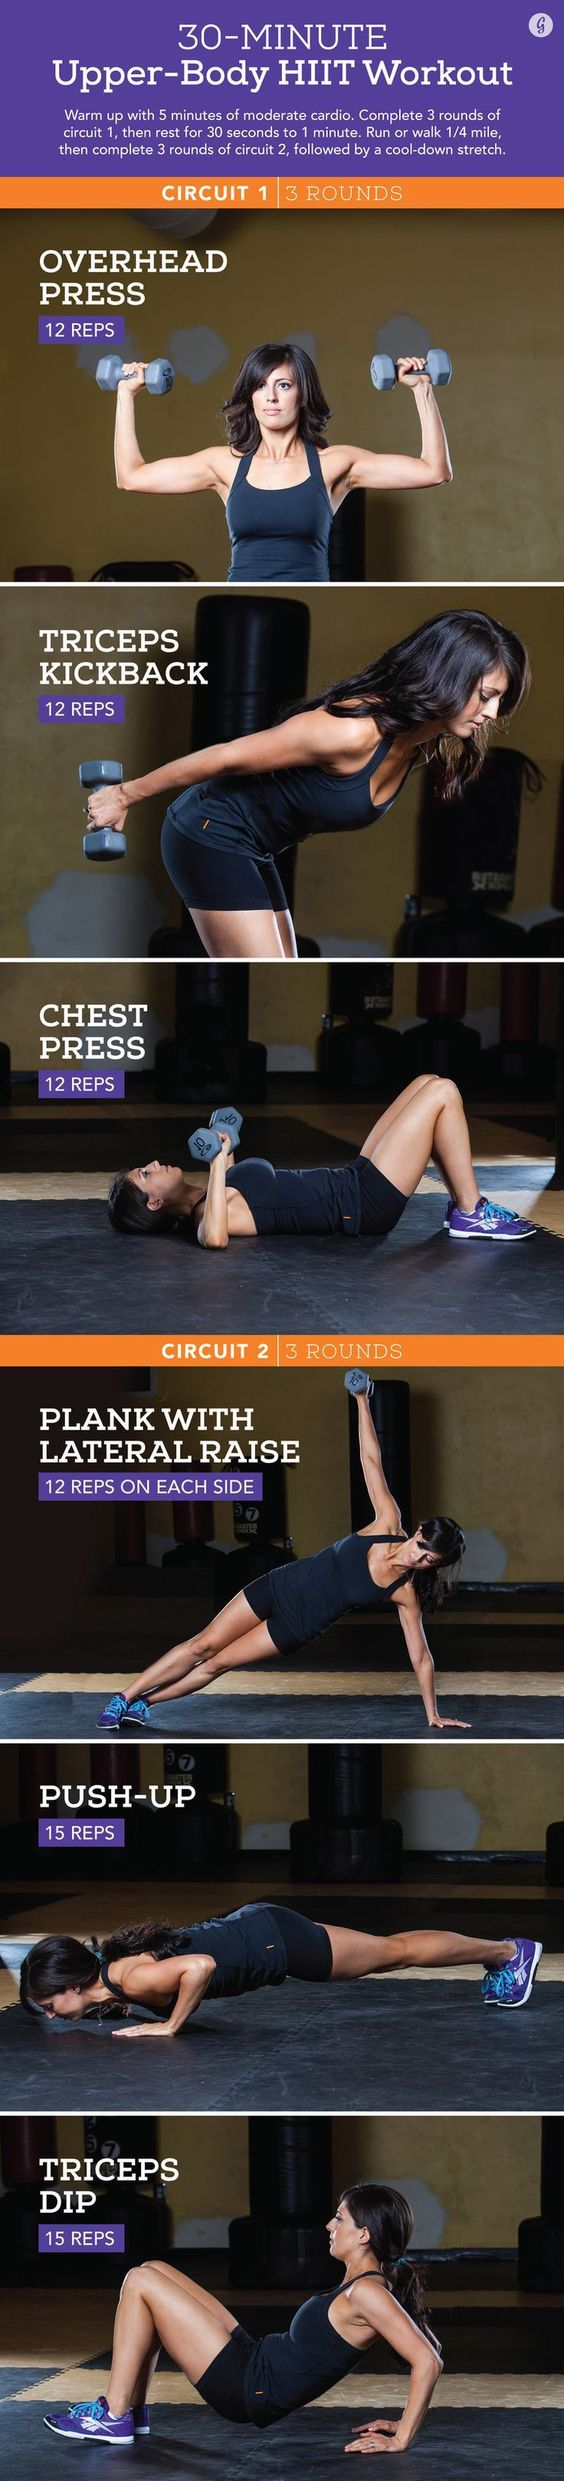 The Quick and Dirty Upper-Body Workout for Women